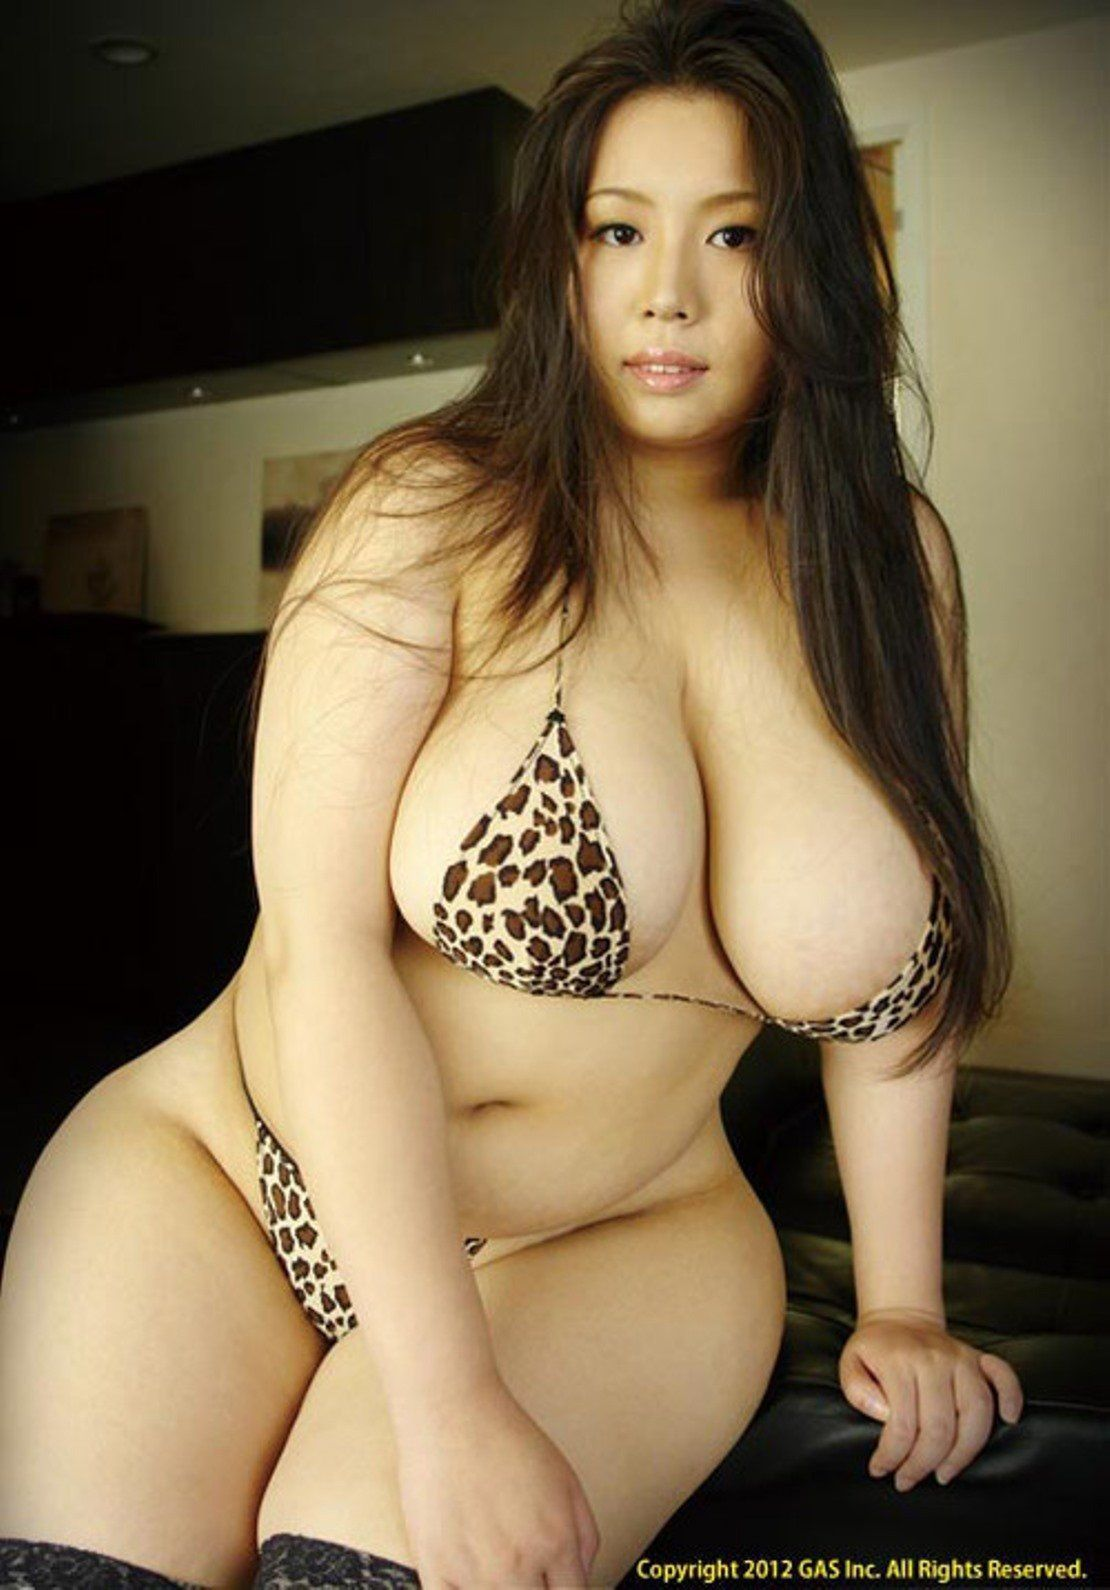 Naughty fat girls vids